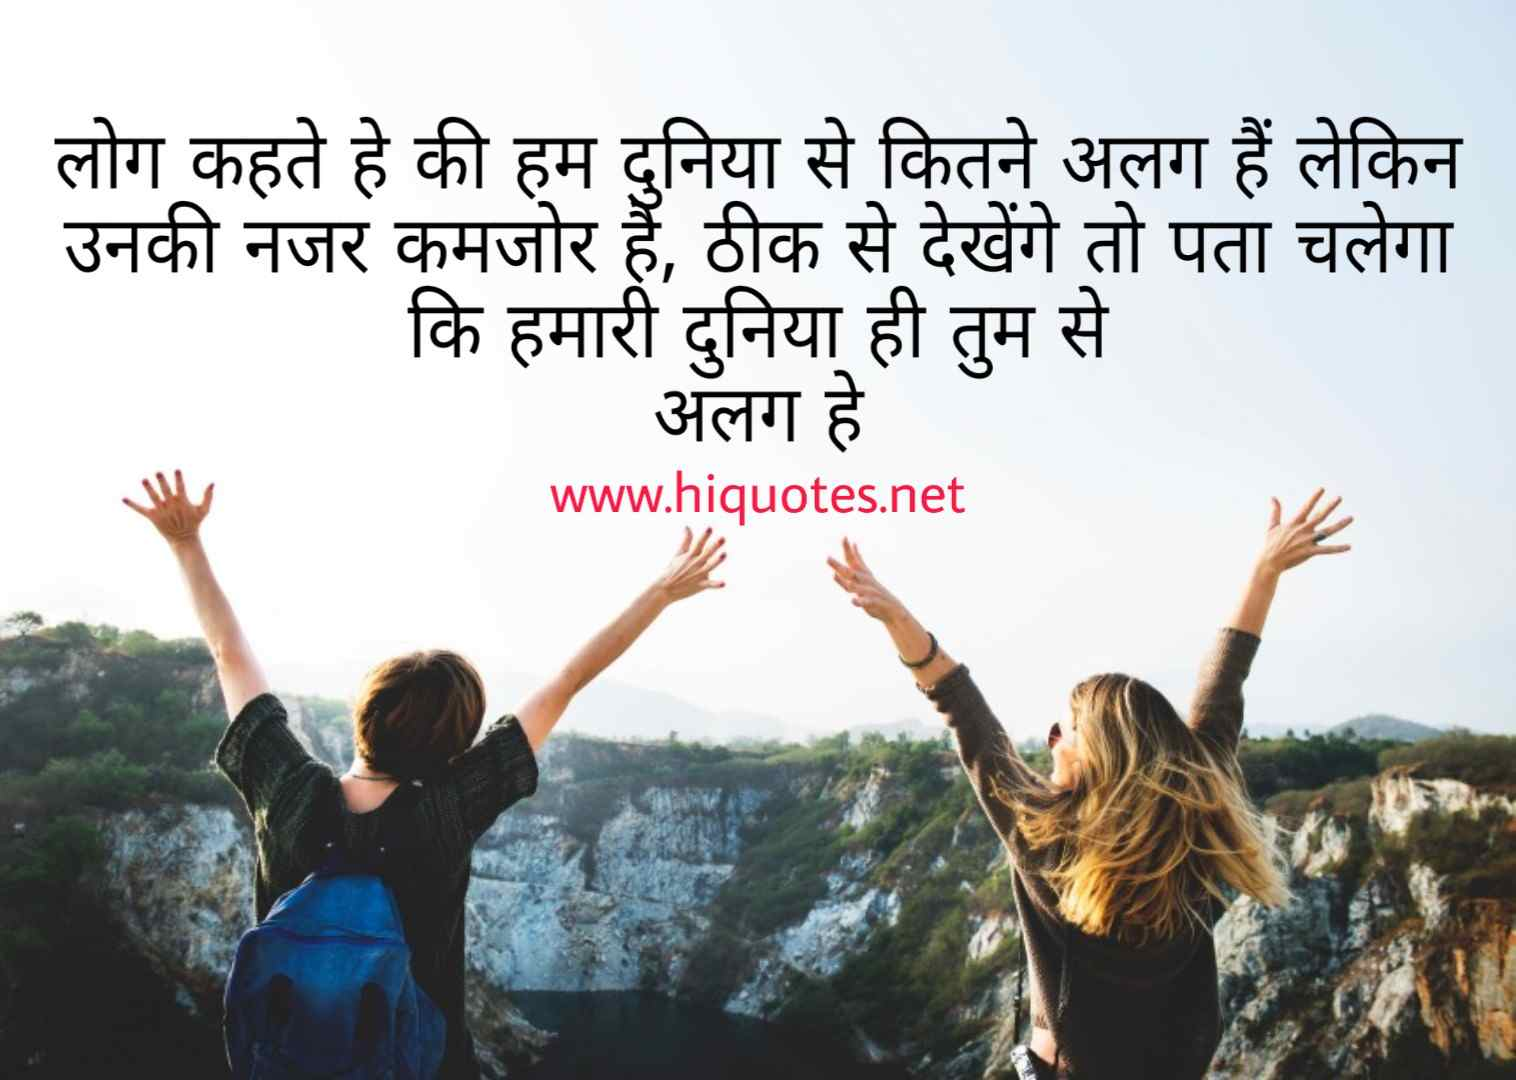 18 Friendship Quotes In Hindi For Whatsapp Status